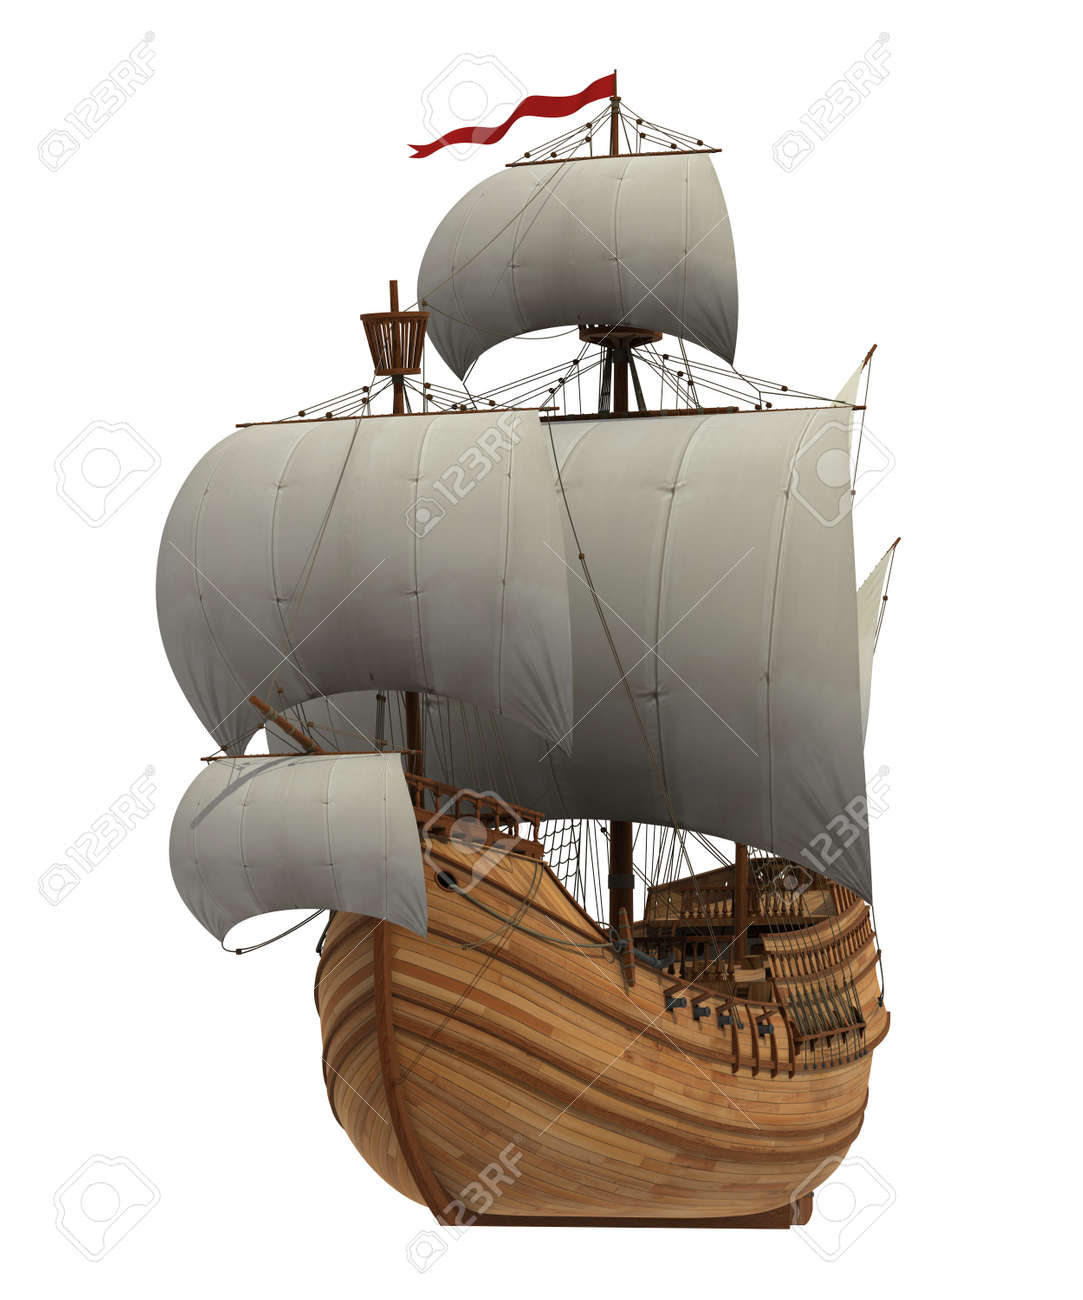 Caravel With White Sails On White Background. 3D Scene. - 40040217